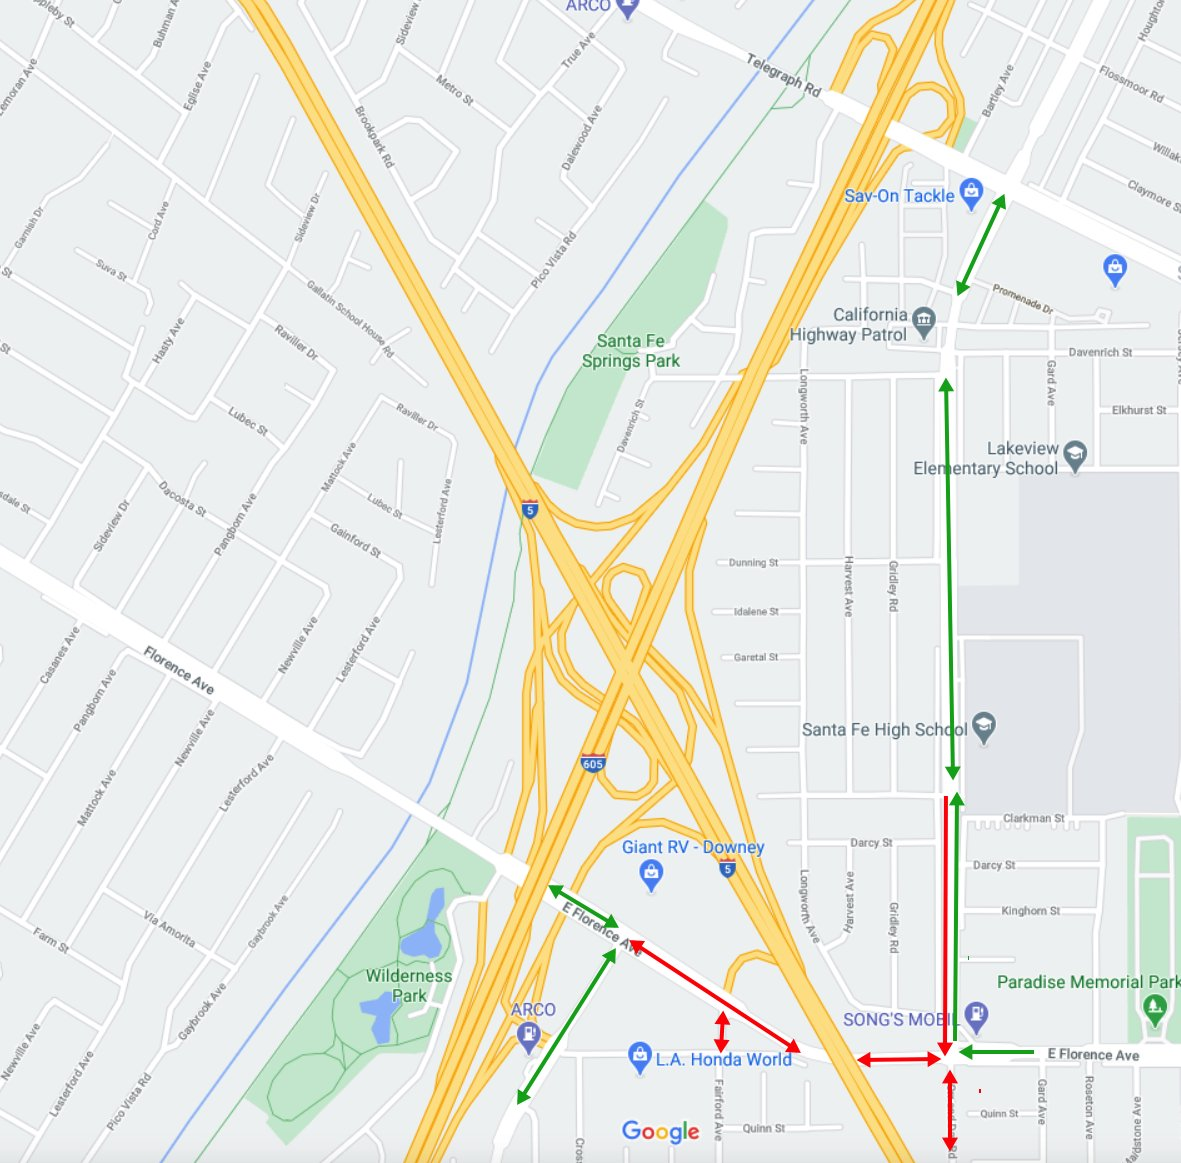 Florence Ave. scheduled to be closed from Gard Ave. to Studebaker Rd. the nights of Mon 11/2, Wed 11/4, Thursday 11/5, and Fri 11/6 to move K-rail & pour asphalt. For more details go to: https://t.co/YMJWFOMNcB https://t.co/oqAOboMc1P